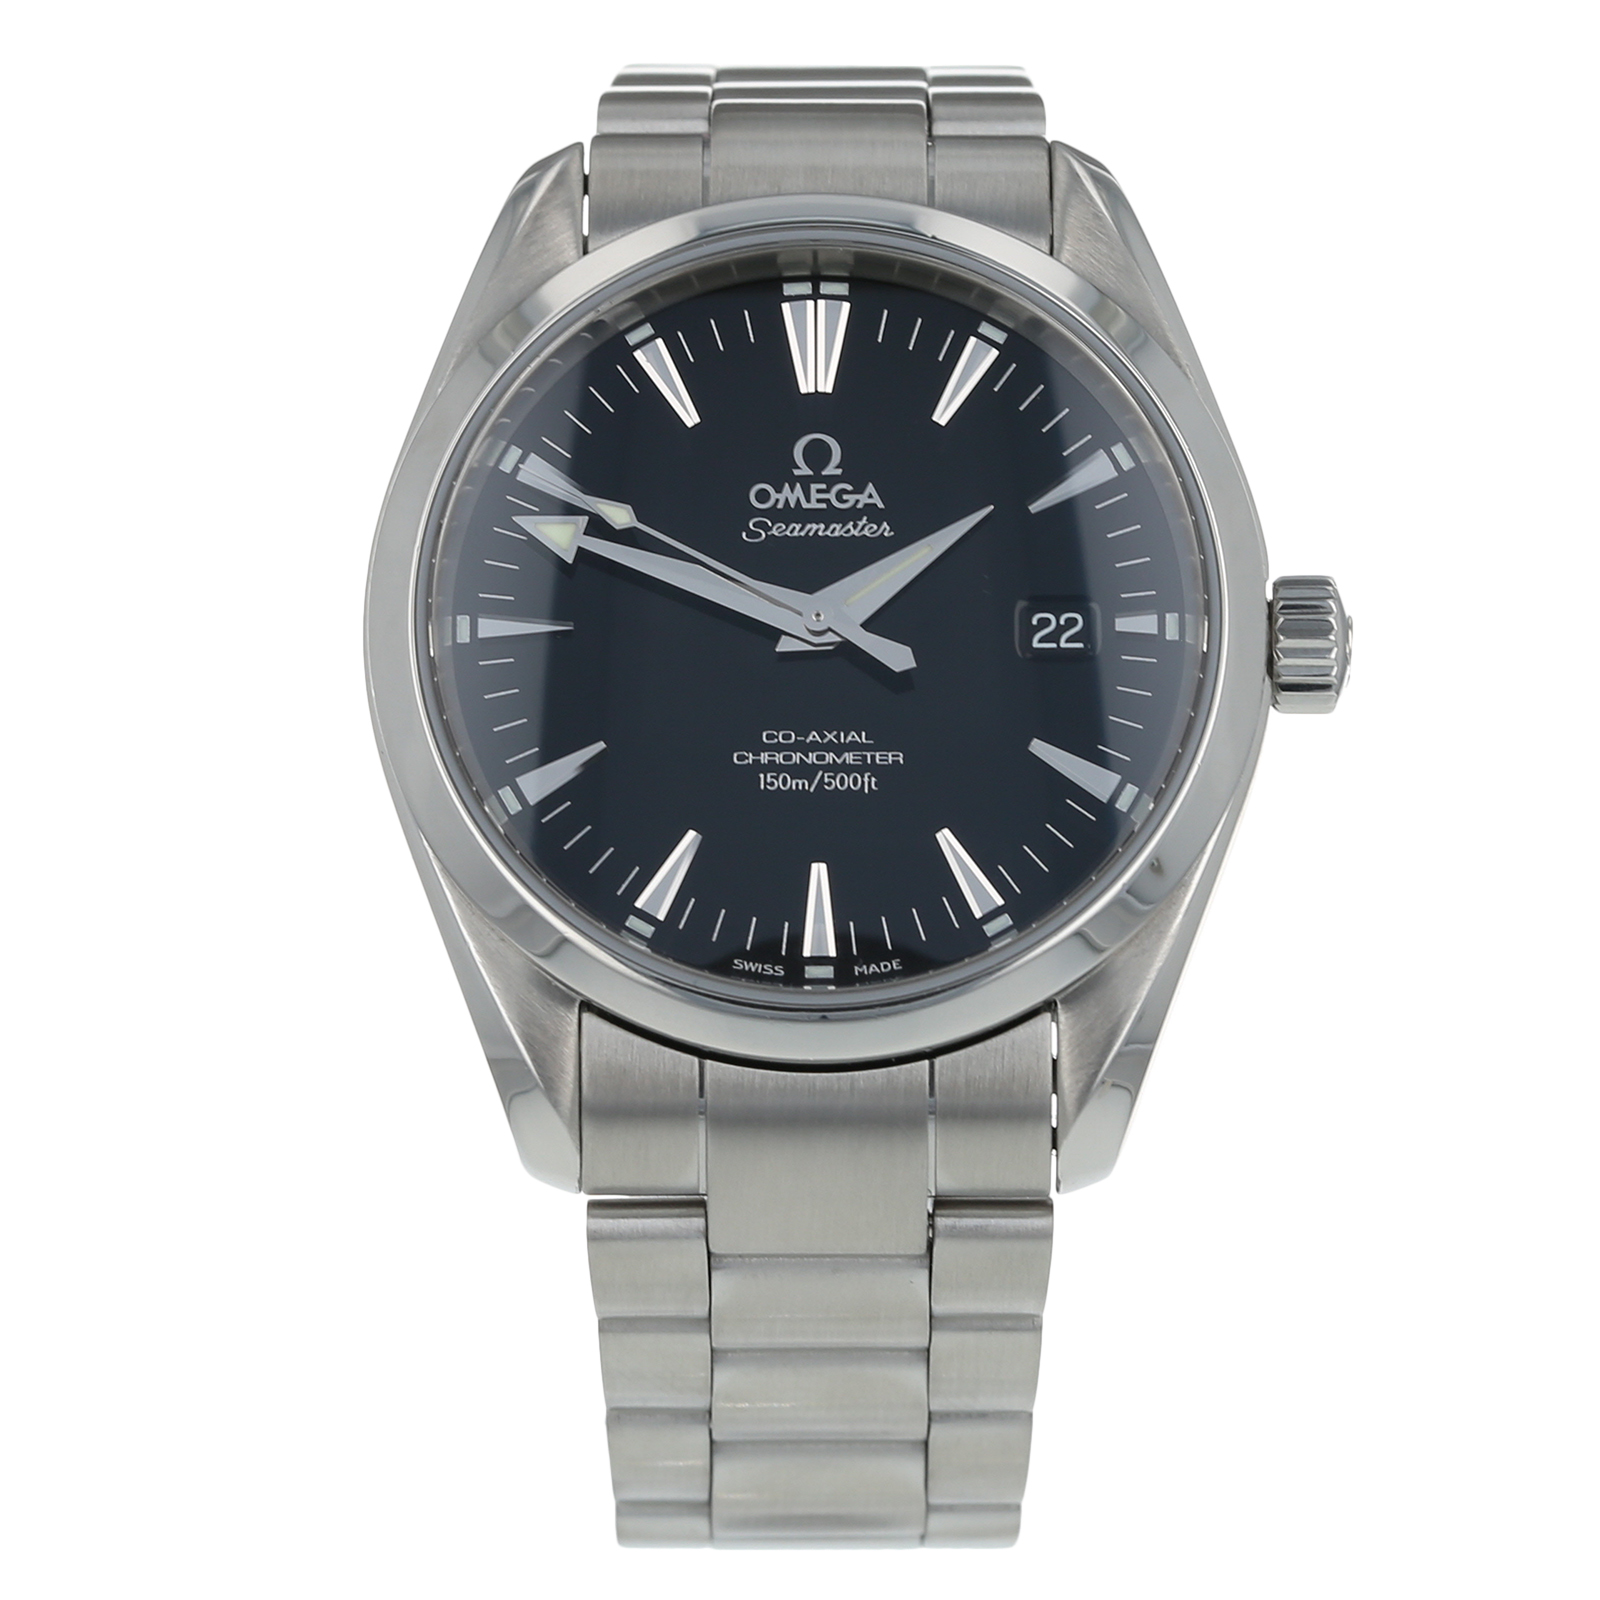 Pre-Owned Omega Seamaster Aqua Terra Chronometer Mens Watch 2503.50.00